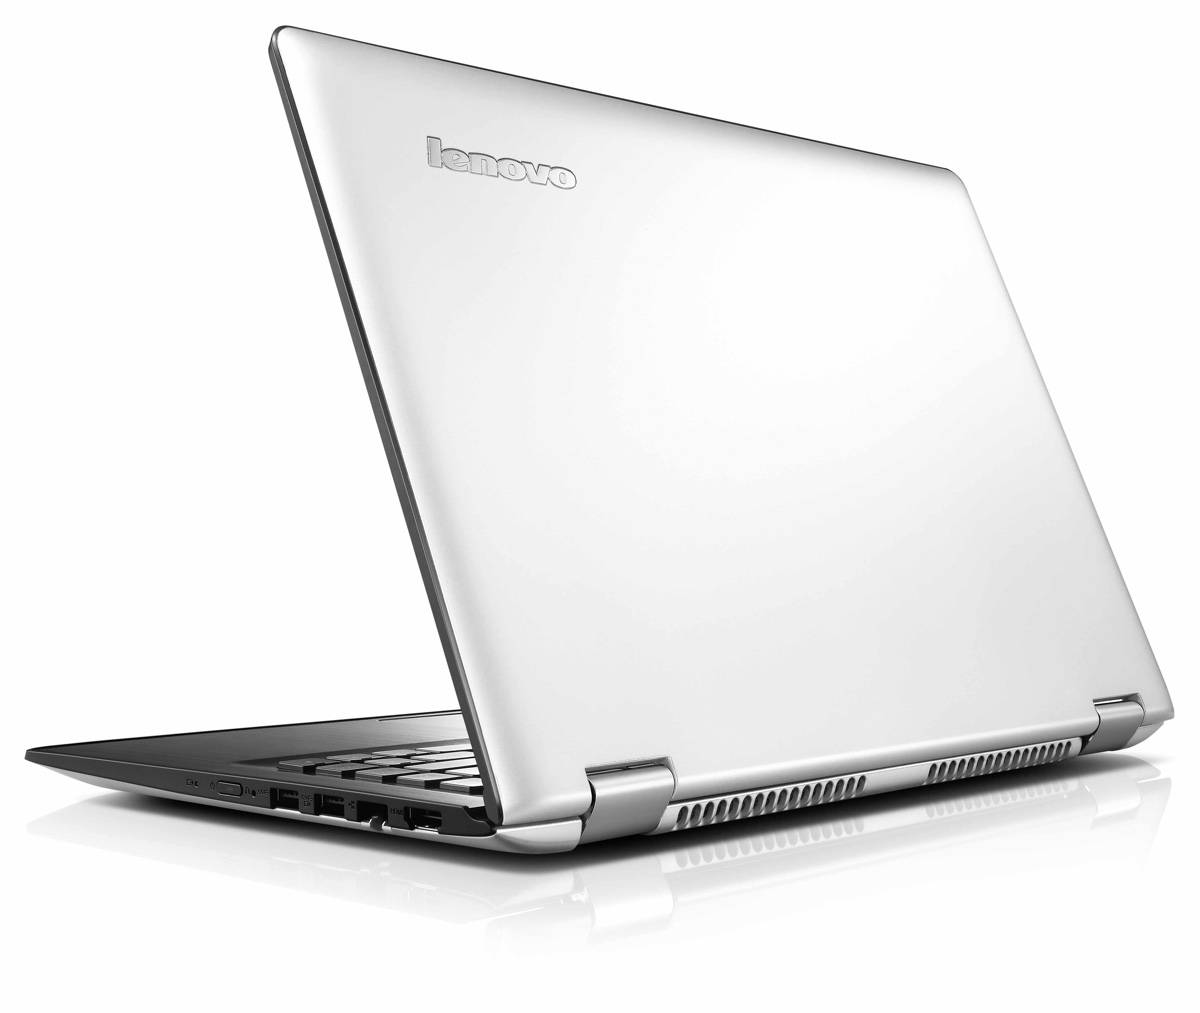 Lenovo rolls out new Android tablets and more at CES 2015